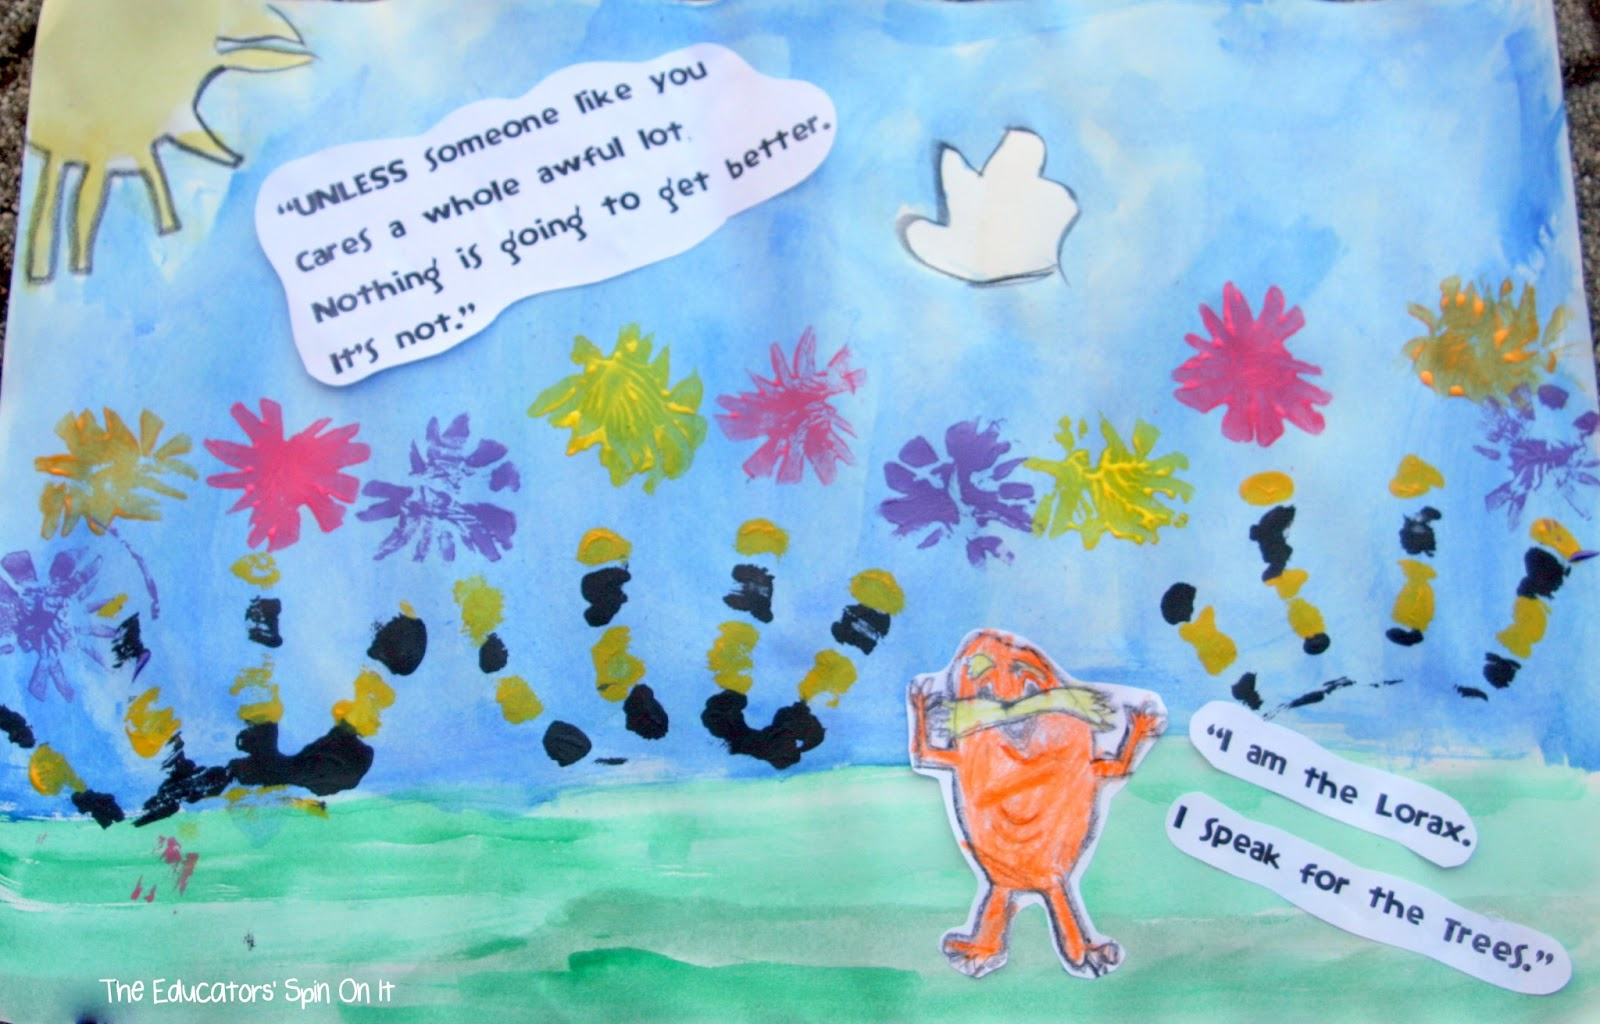 Dr Seuss Lorax Quote 4 Quotes Links